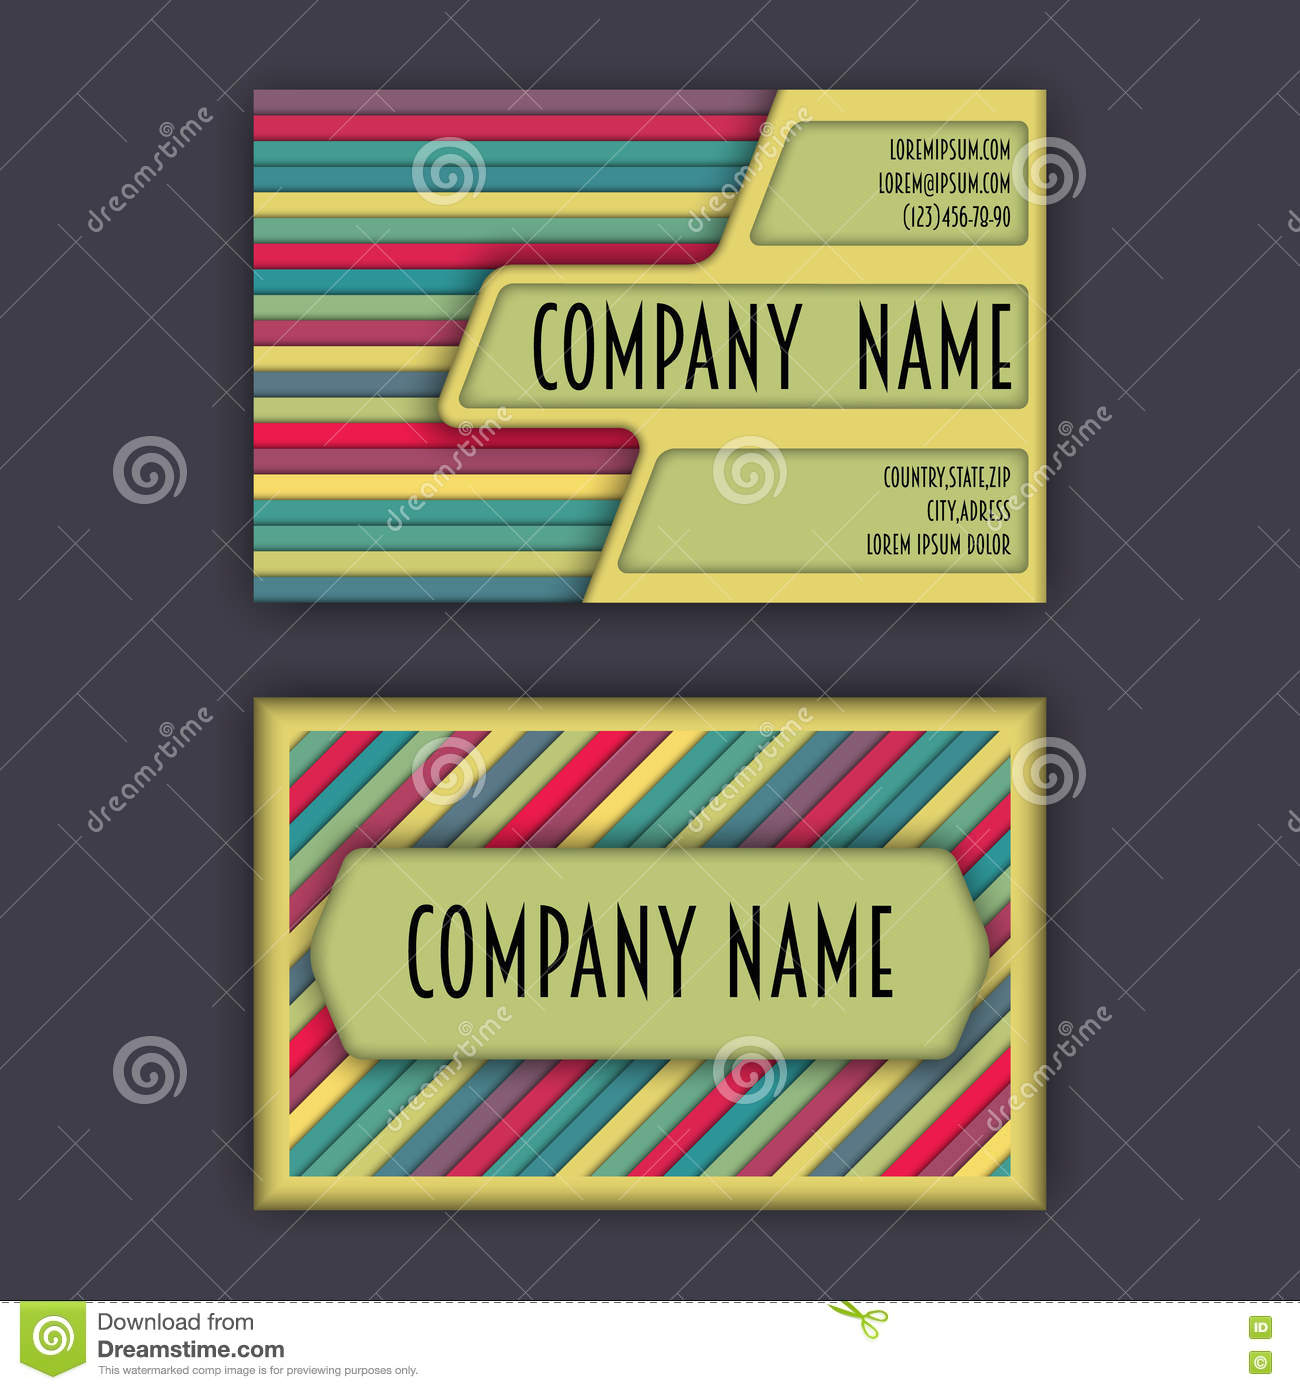 Business card template with 3d paper colorful lines stock download business card template with 3d paper colorful lines stock illustration illustration of framework accmission Images